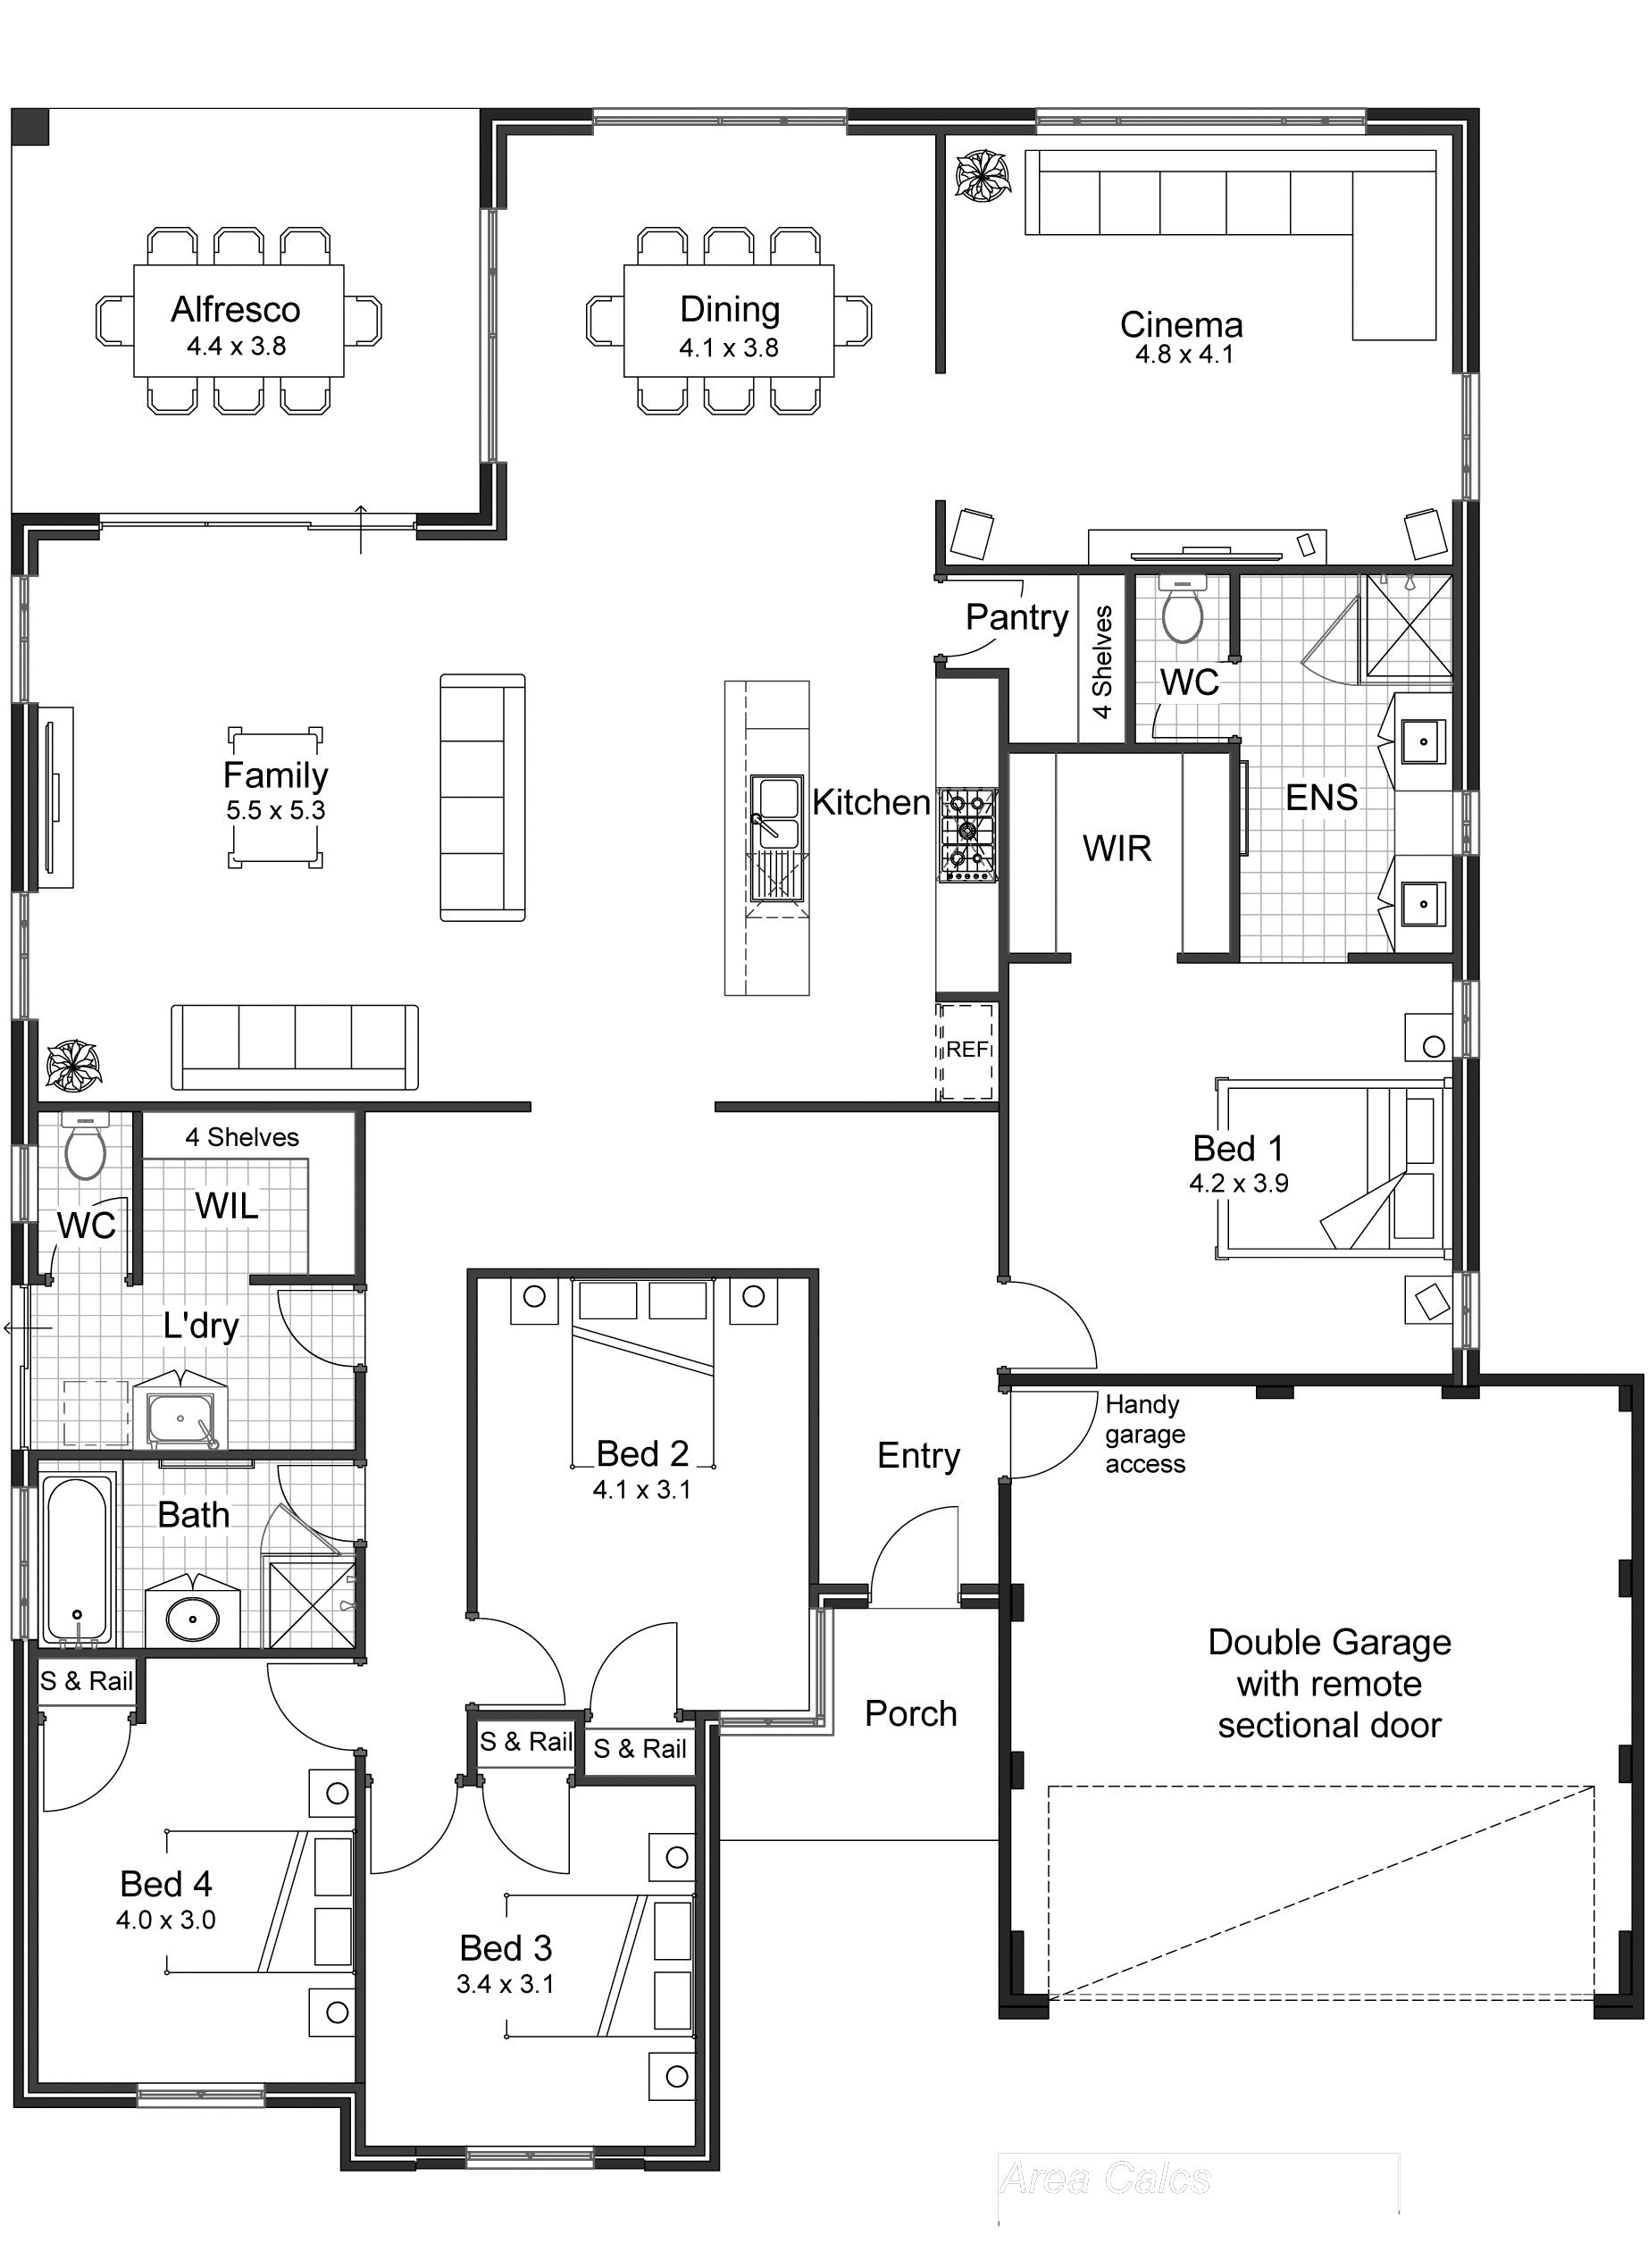 explore floor plans for homes and more - Floor Plans For Homes